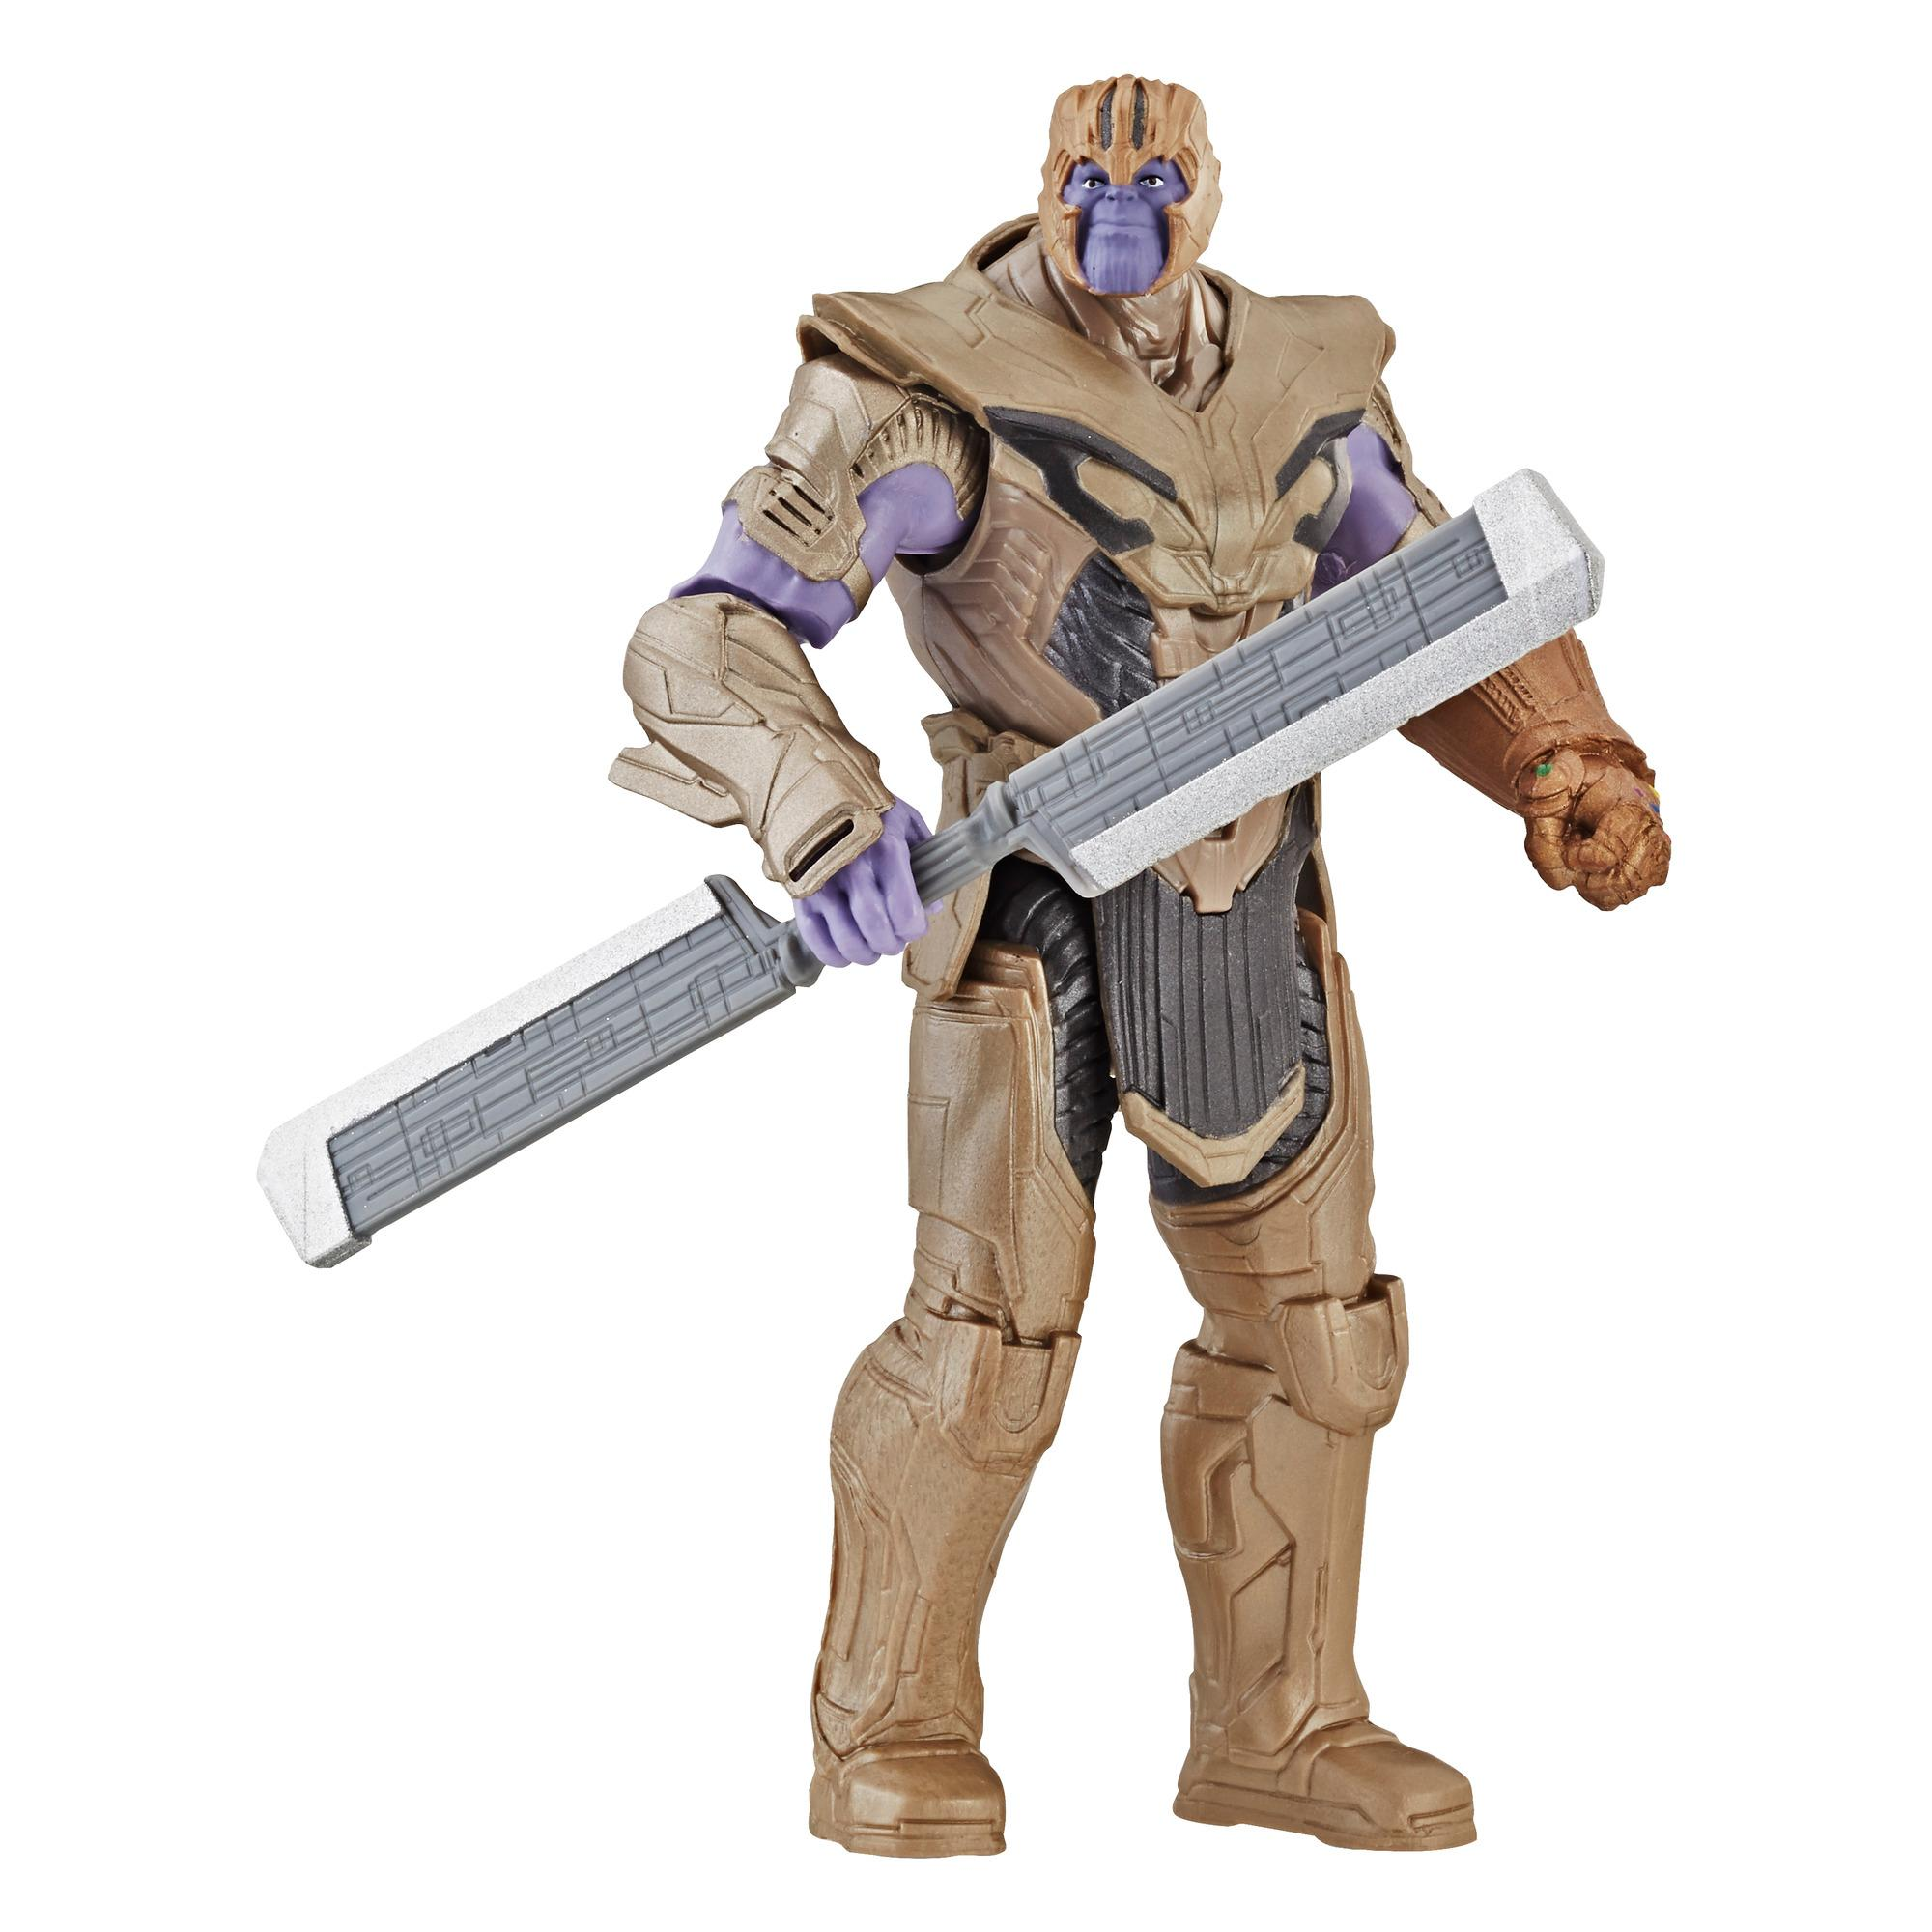 Marvel Avengers: Endgame Deluxe-Figuren aus dem Marvel Cinematic Universe – Thanos